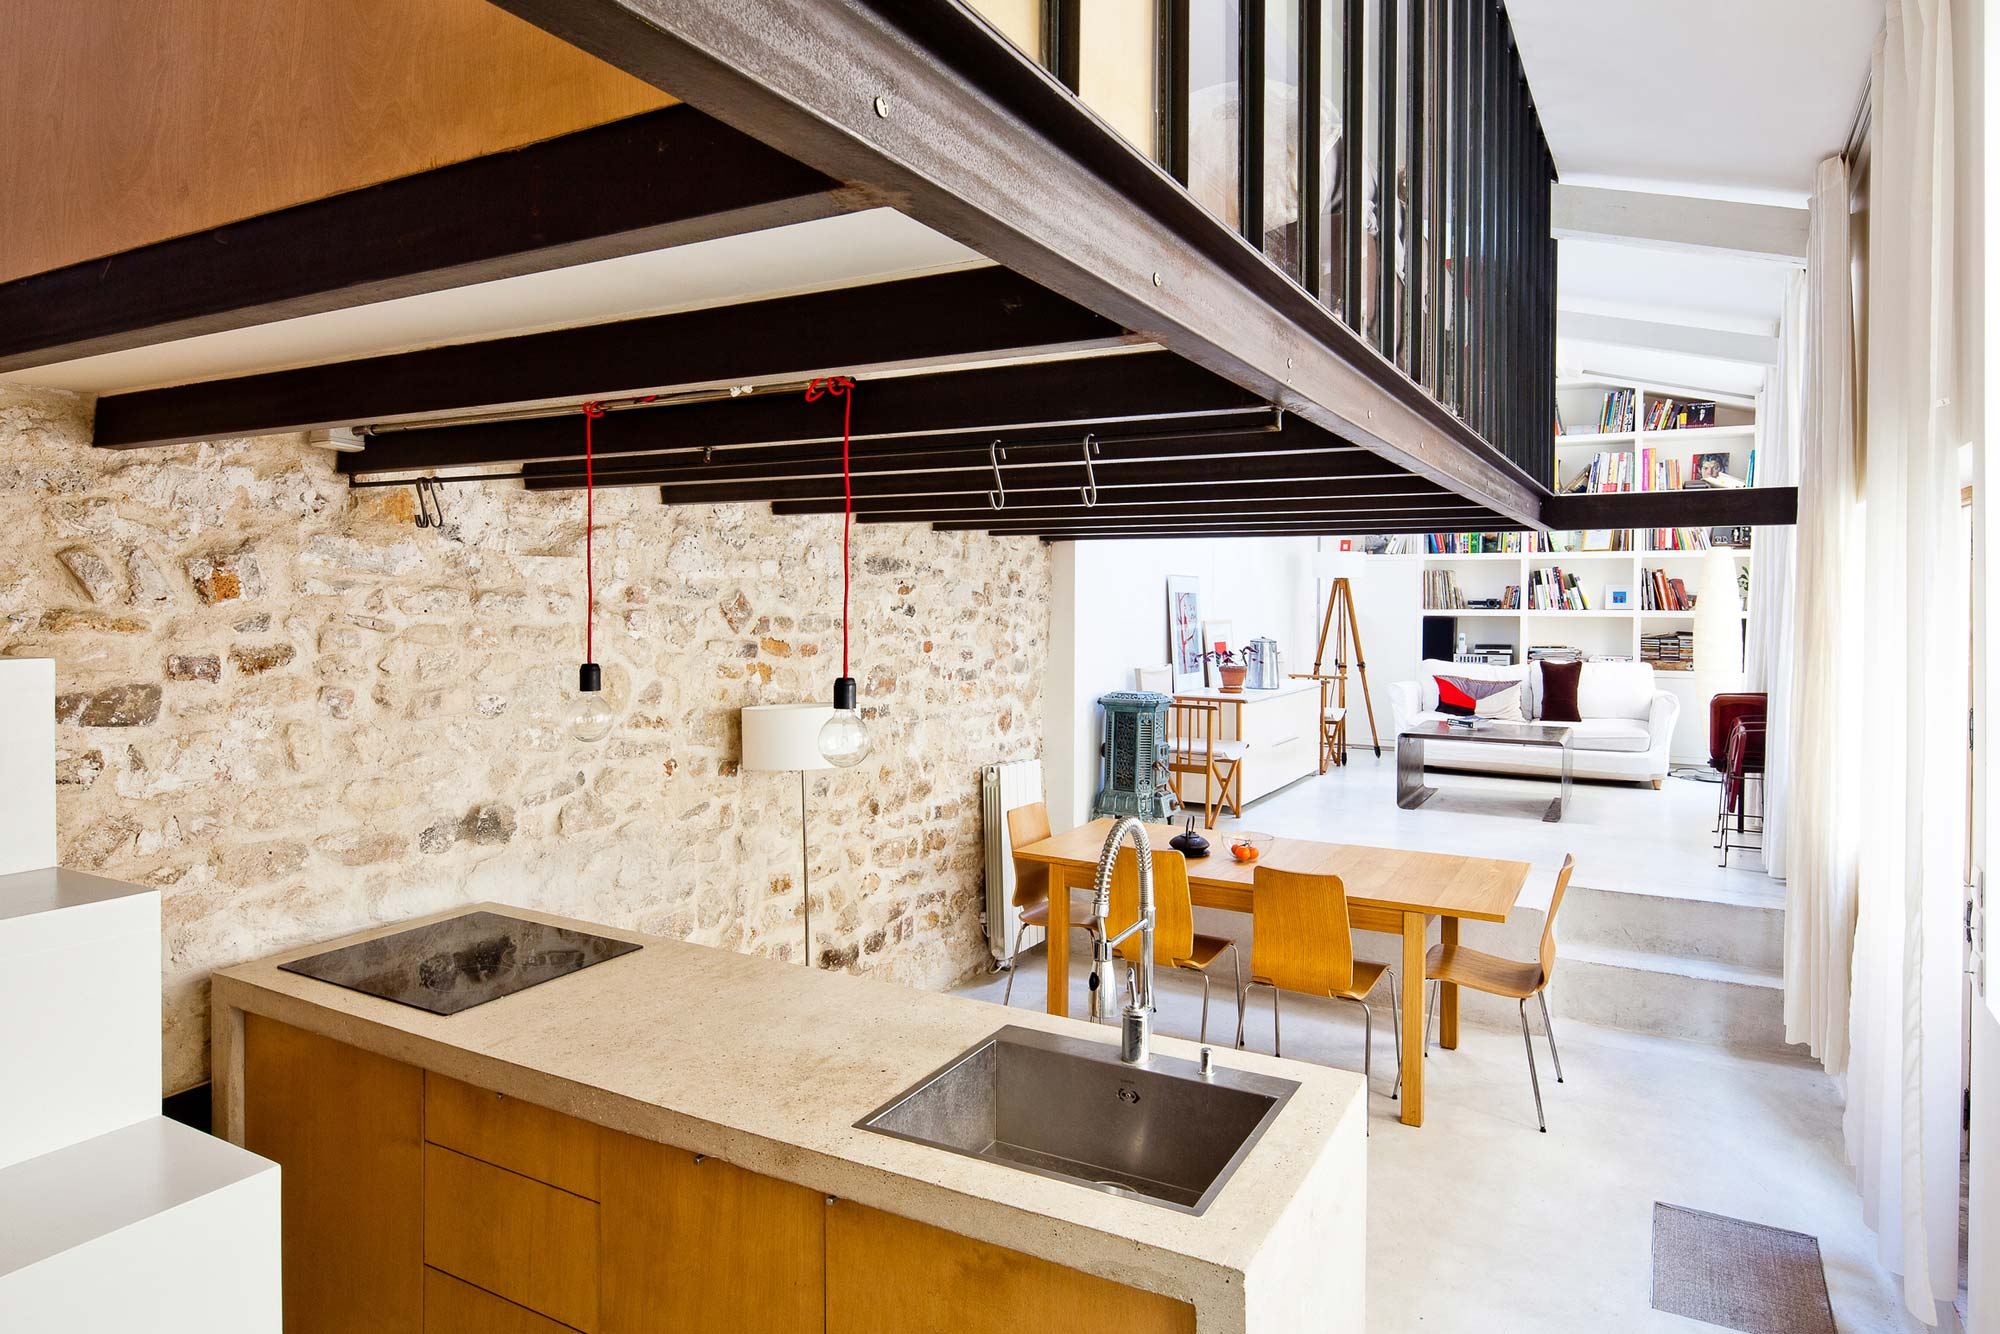 Transformation of a Studio into a Loft by NZI Architectes